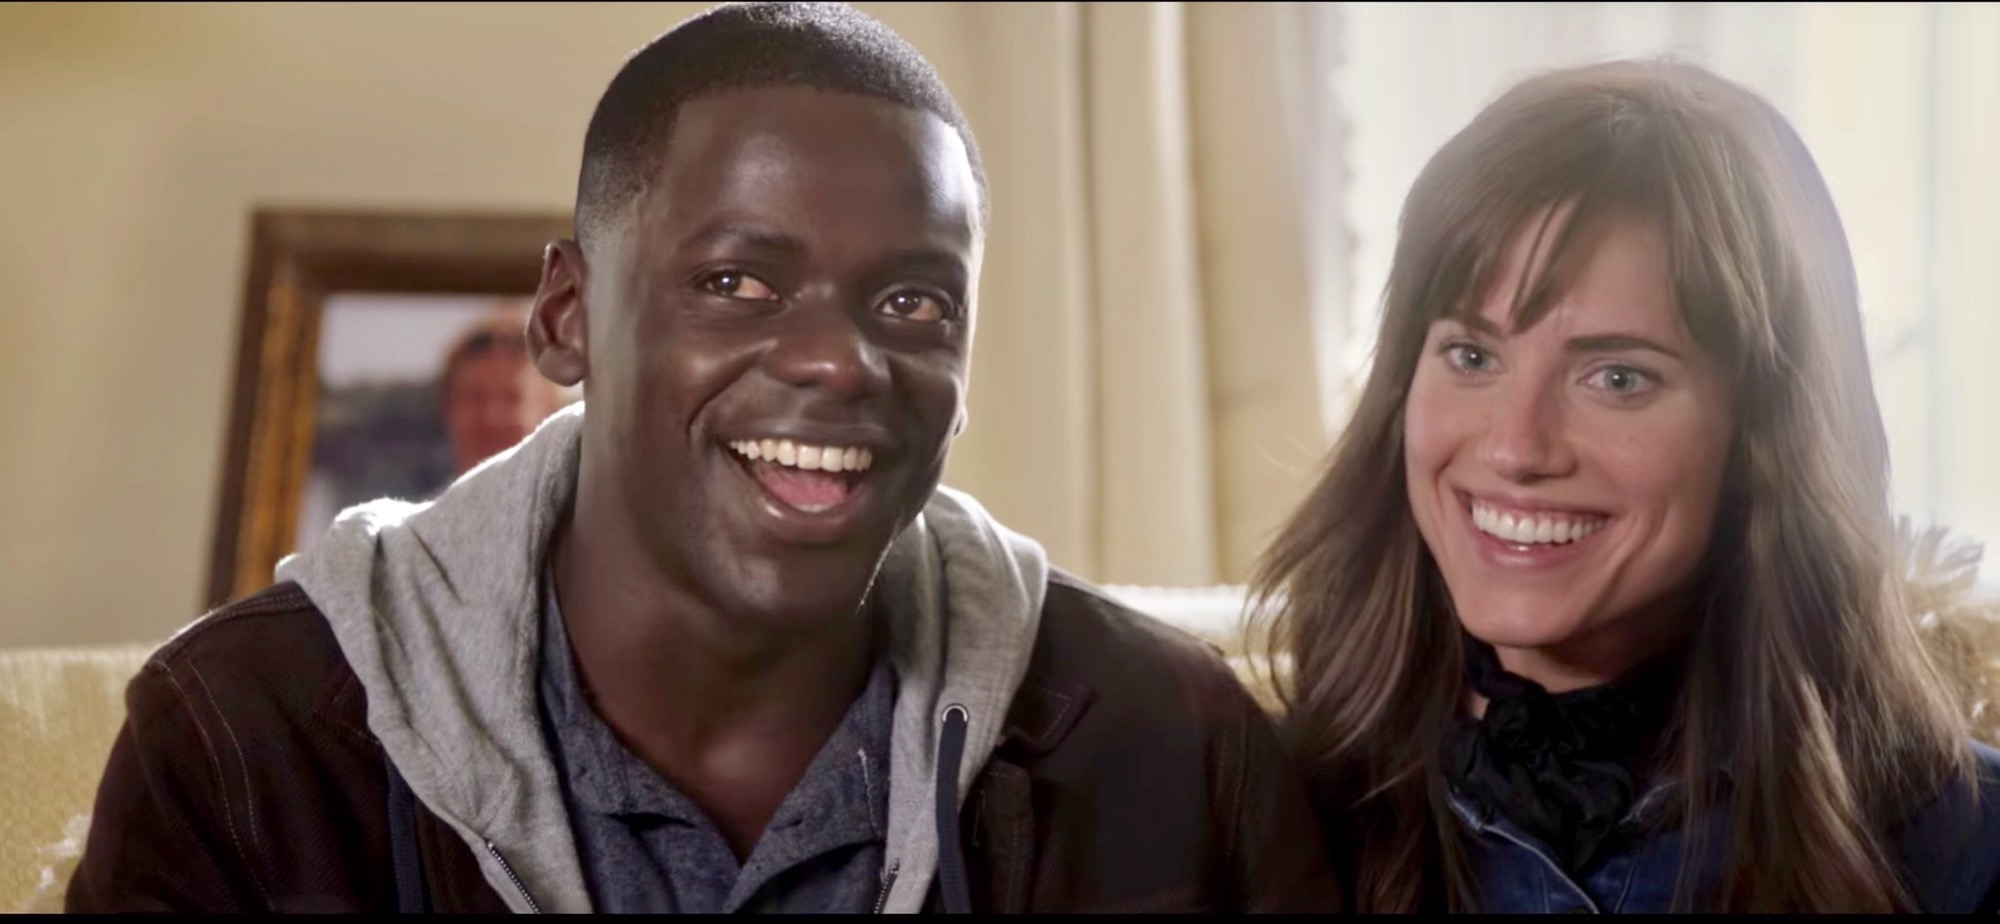 get out movie, Daniel Kaluuya, Allison Williams, Jordan Peele